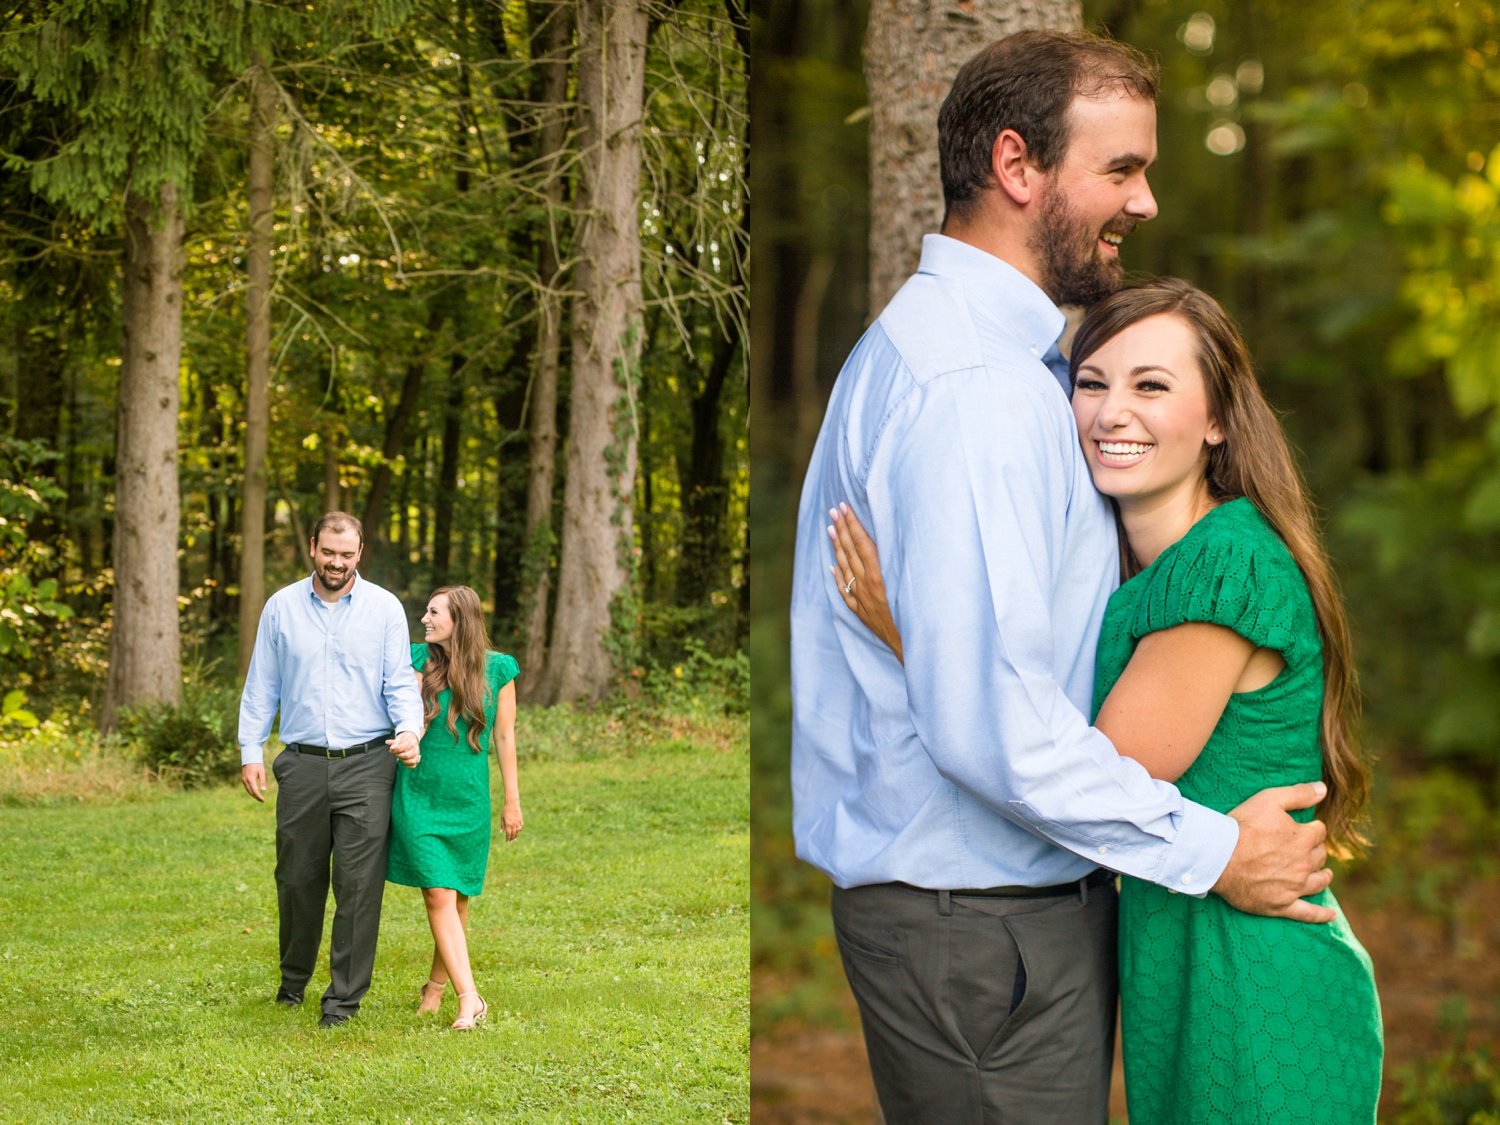 preston park engagement photos, pittsburgh wedding photographers, butler wedding photographer, pittsburgh engagement photographer